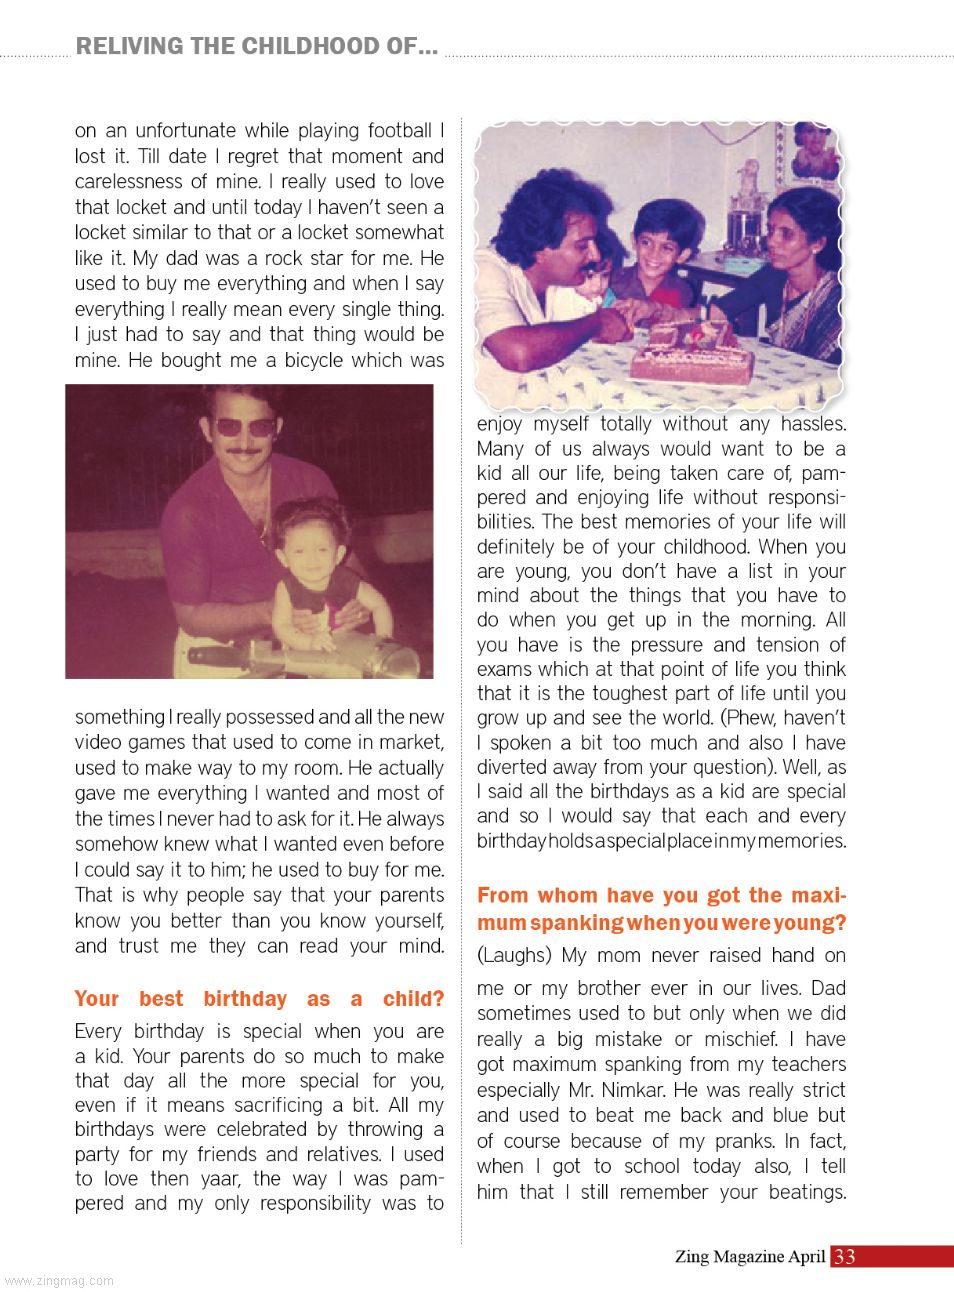 http://img.zingmag.com/images/954x1292/151-page-33.jpg